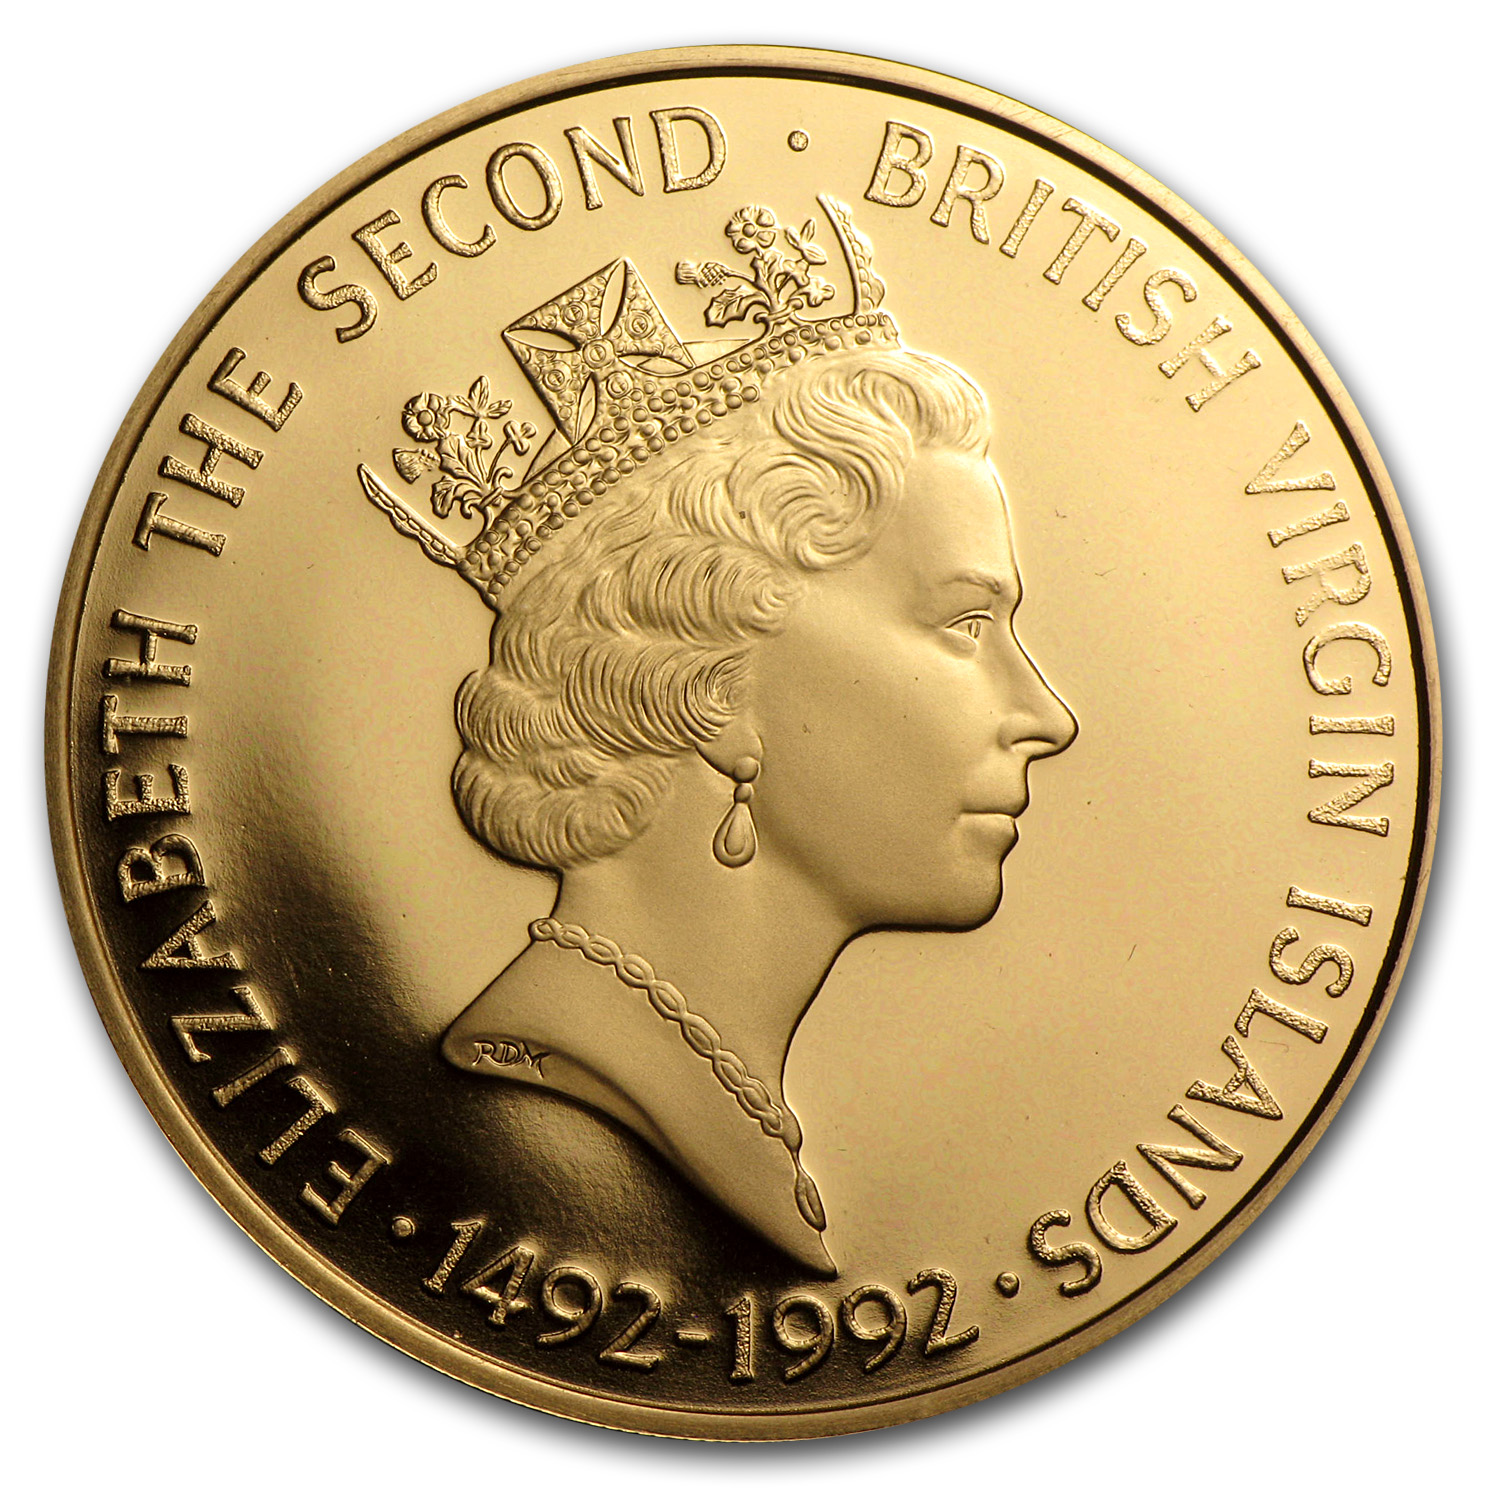 British Virgin Islands 1992 $500 Gold Proof Columbus